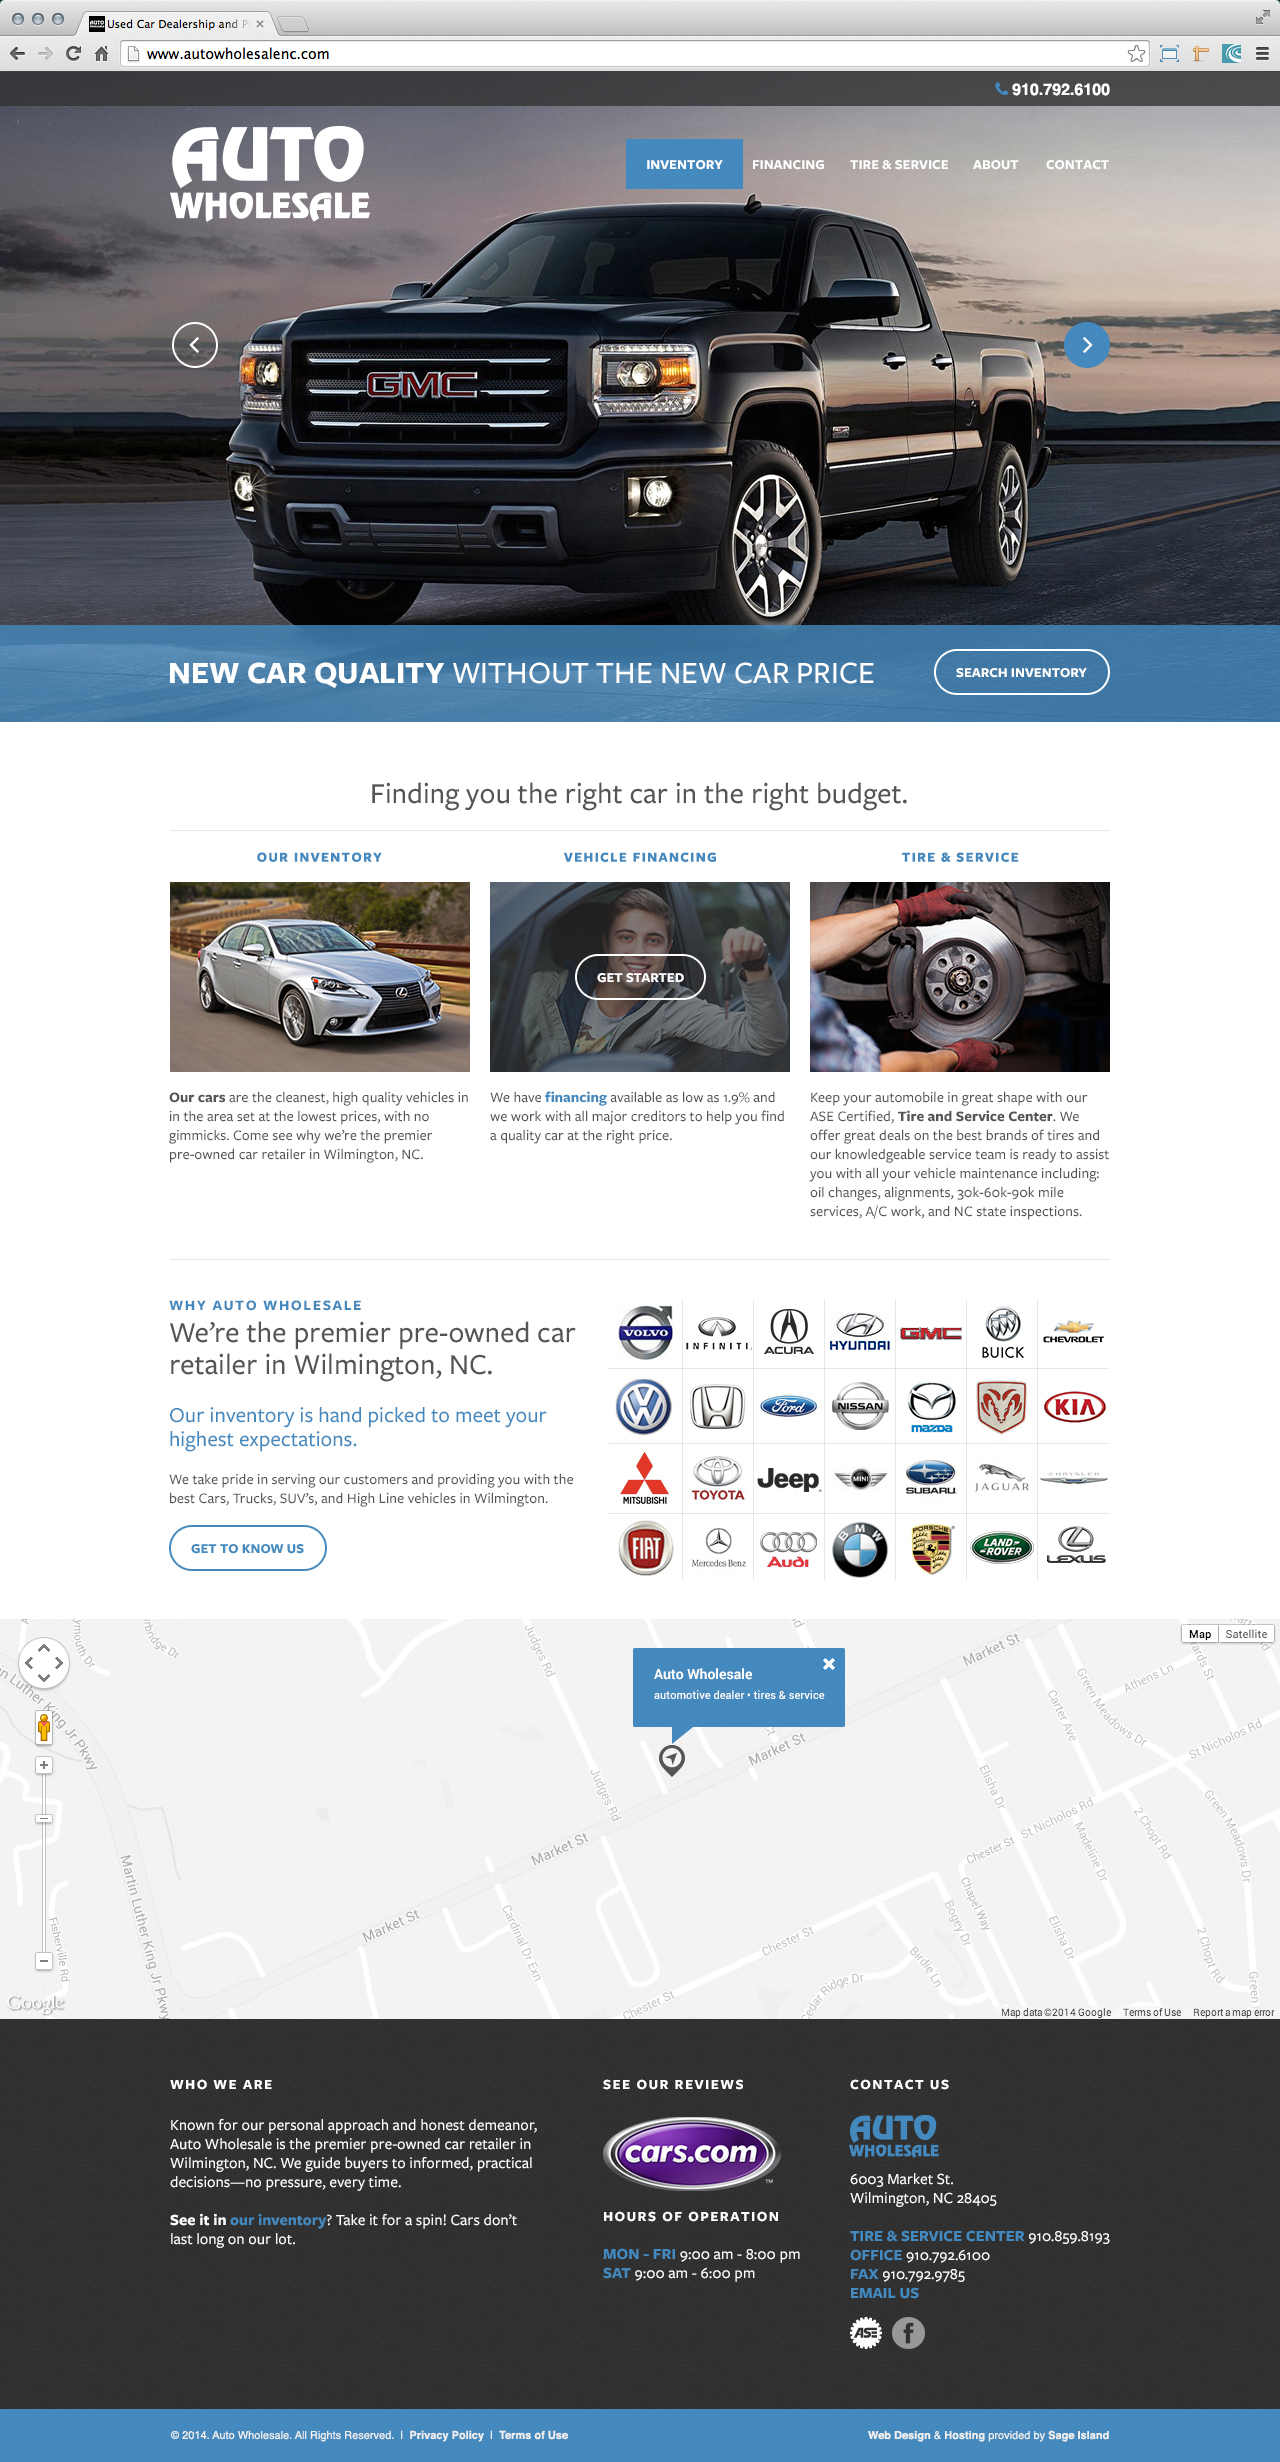 auto-wholesale-used-car-dealership-website-design